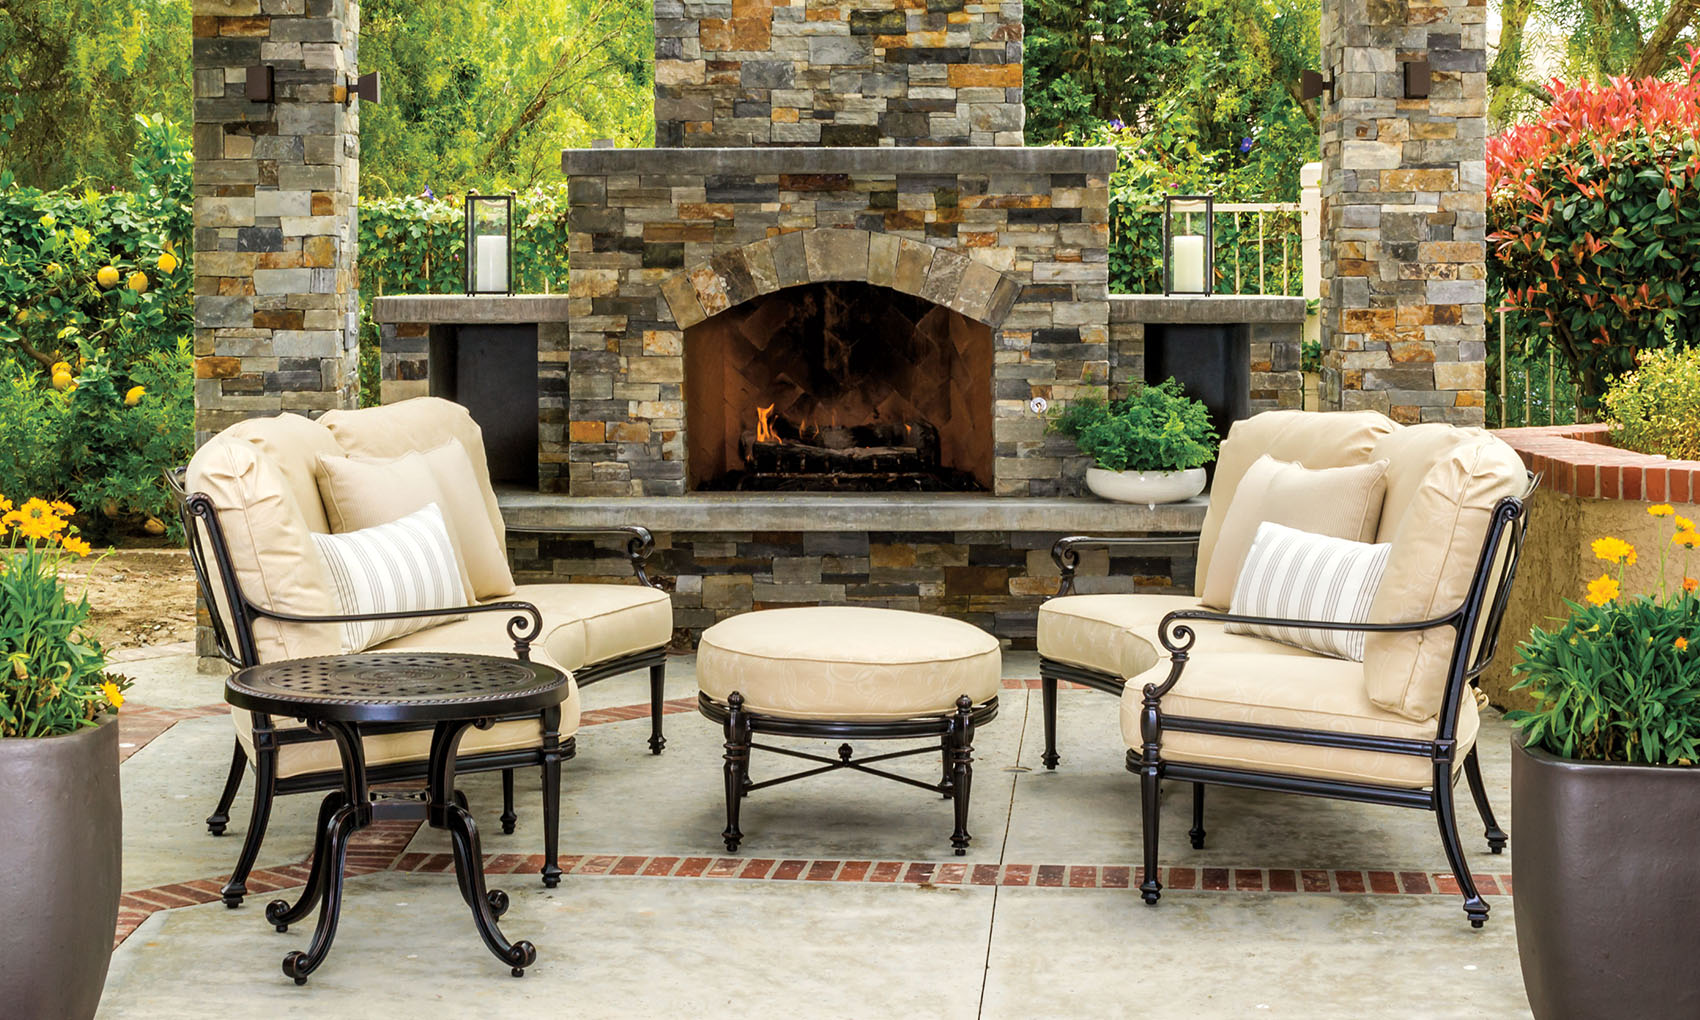 Patio Furniture Georgetown Fireplace And Patio .